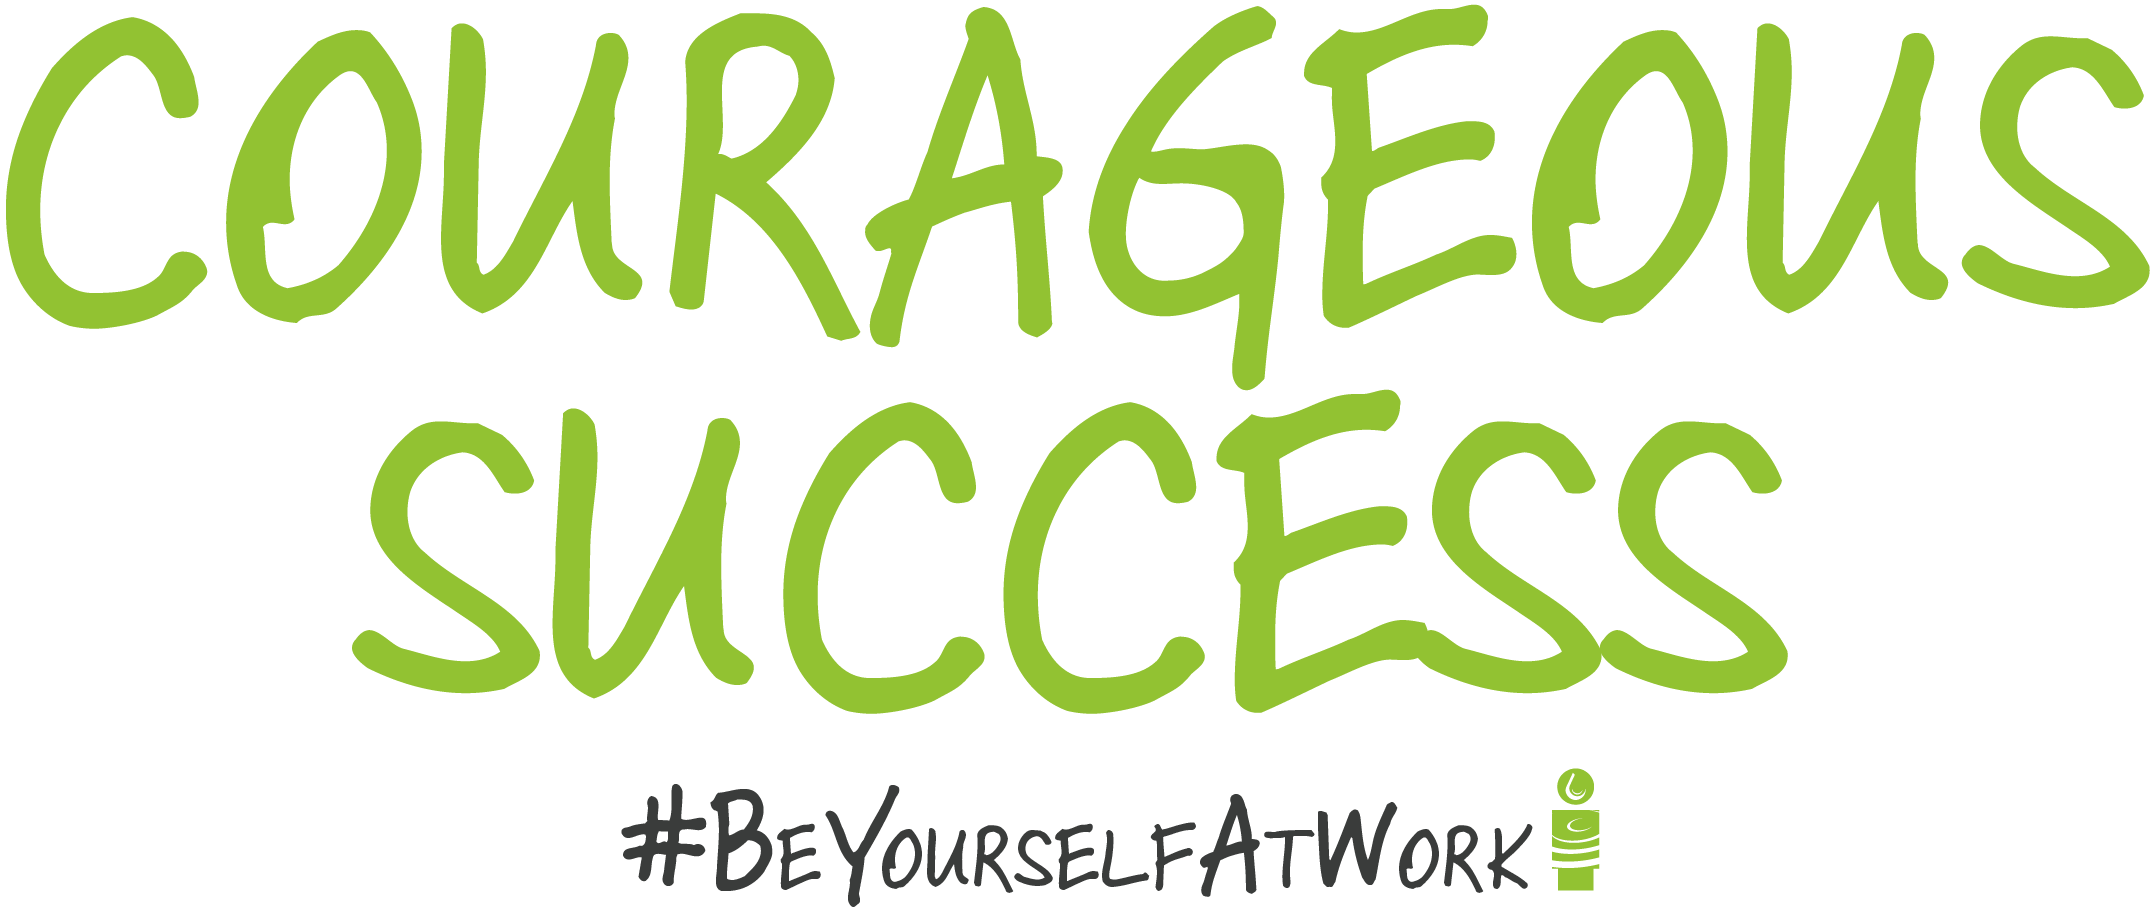 Courageous Success